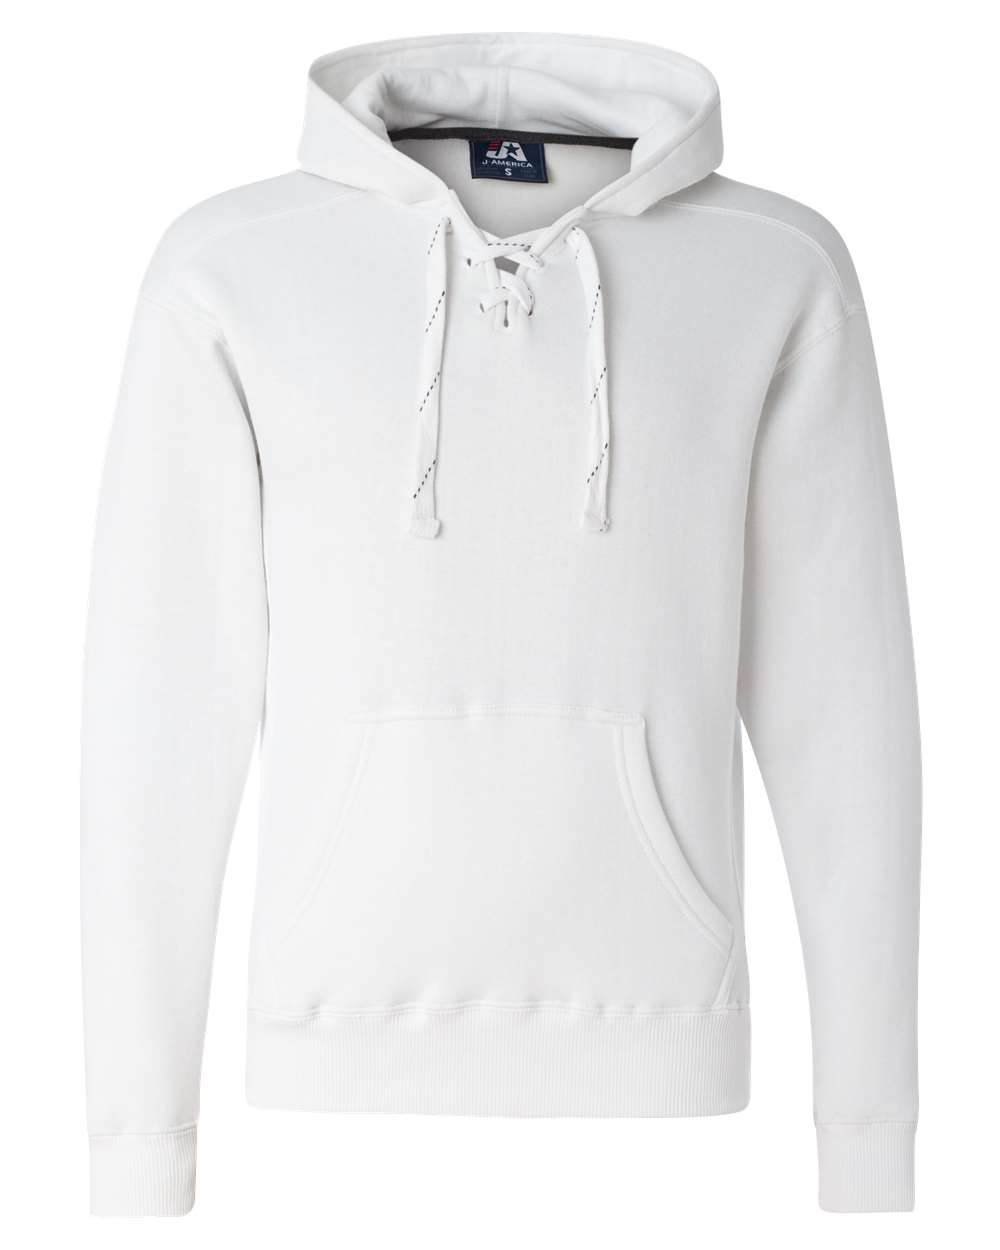 J-America-Mens-Blank-Sport-Lace-Hooded-Sweatshirt-8830-up-to-3XL thumbnail 27